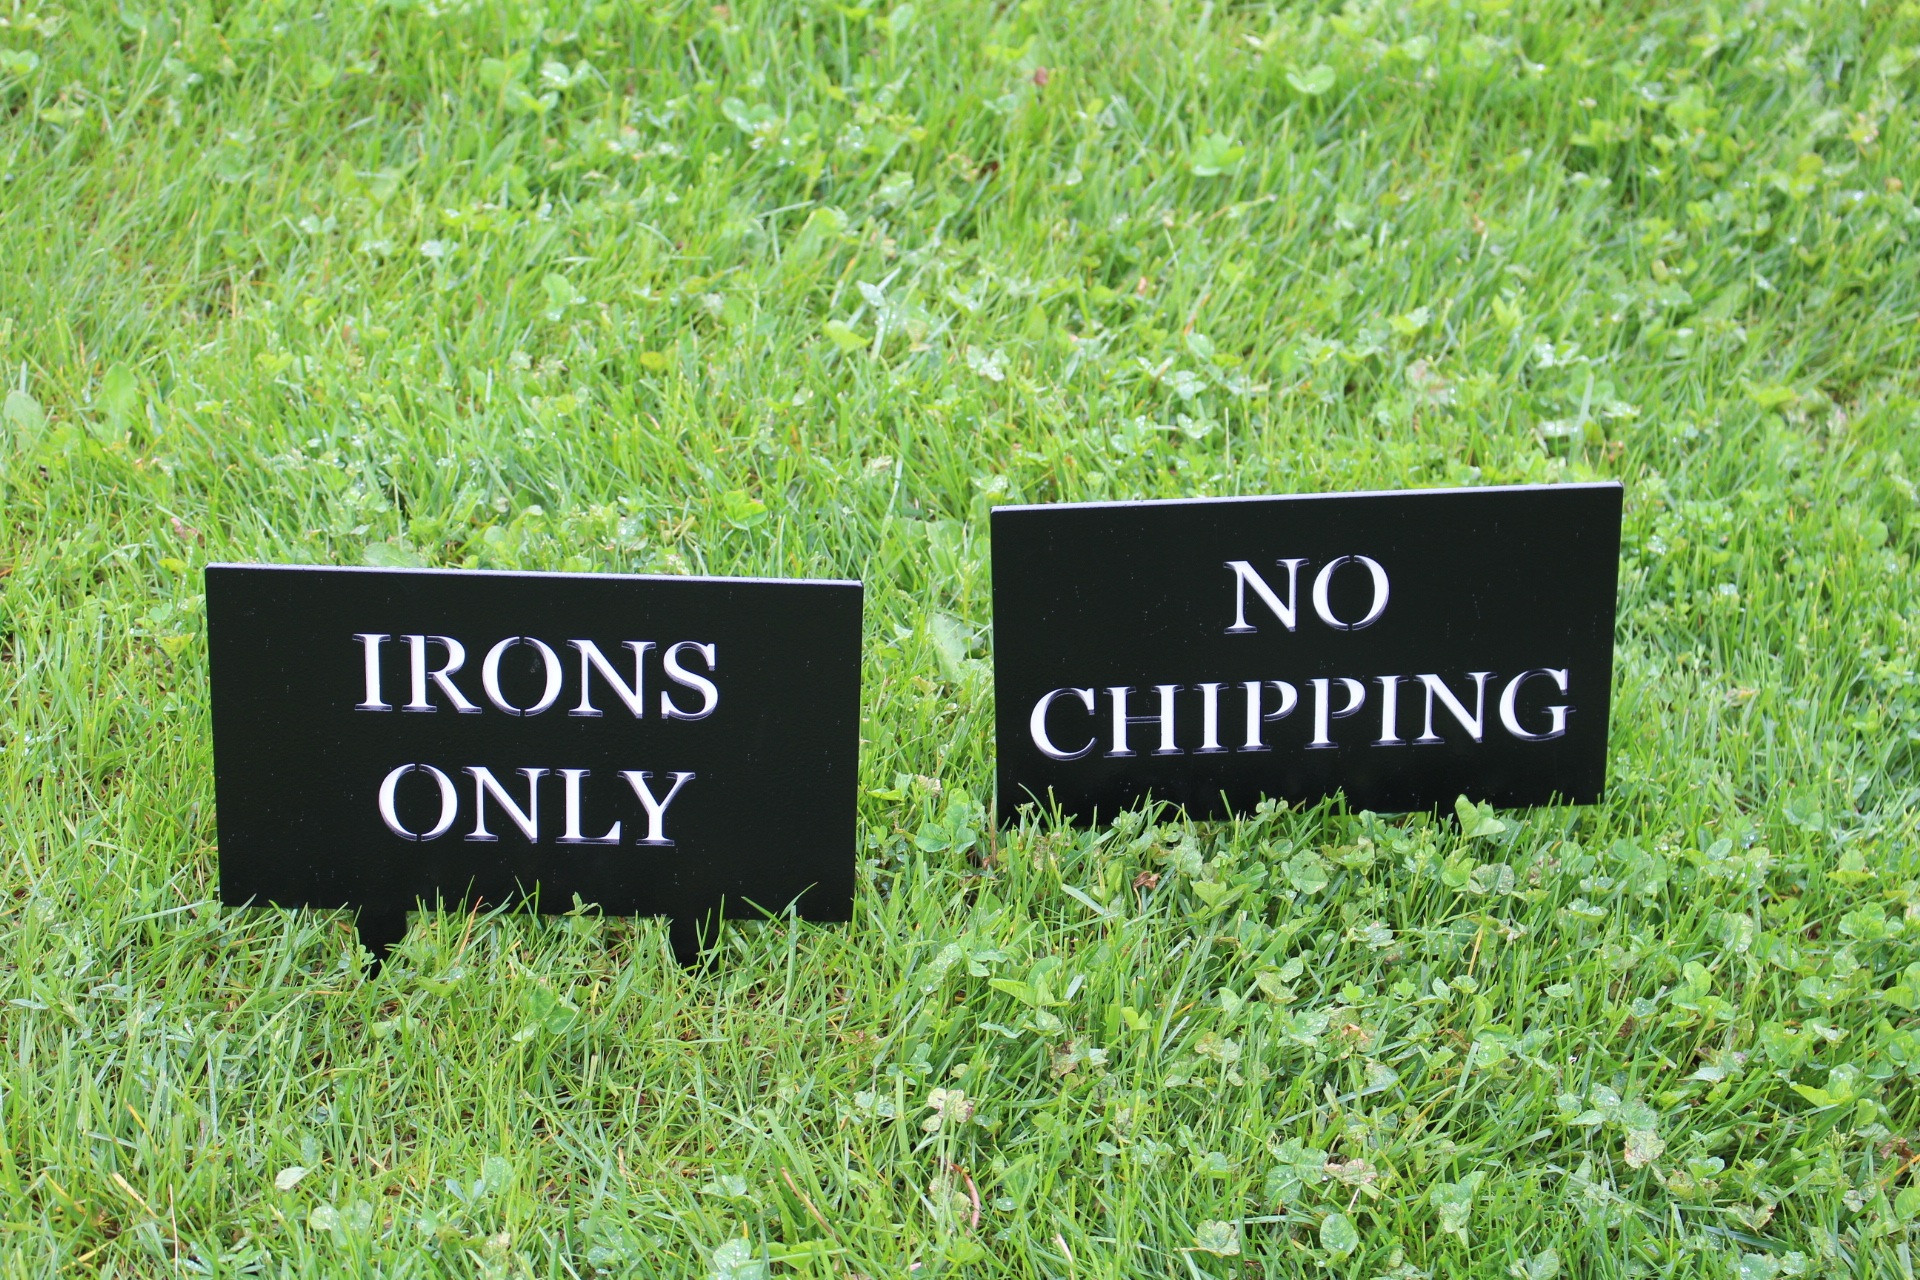 IRONS-ONLY-CHIPPING-ONLY-SIGNS-COLUMBIA-EDGEWATER